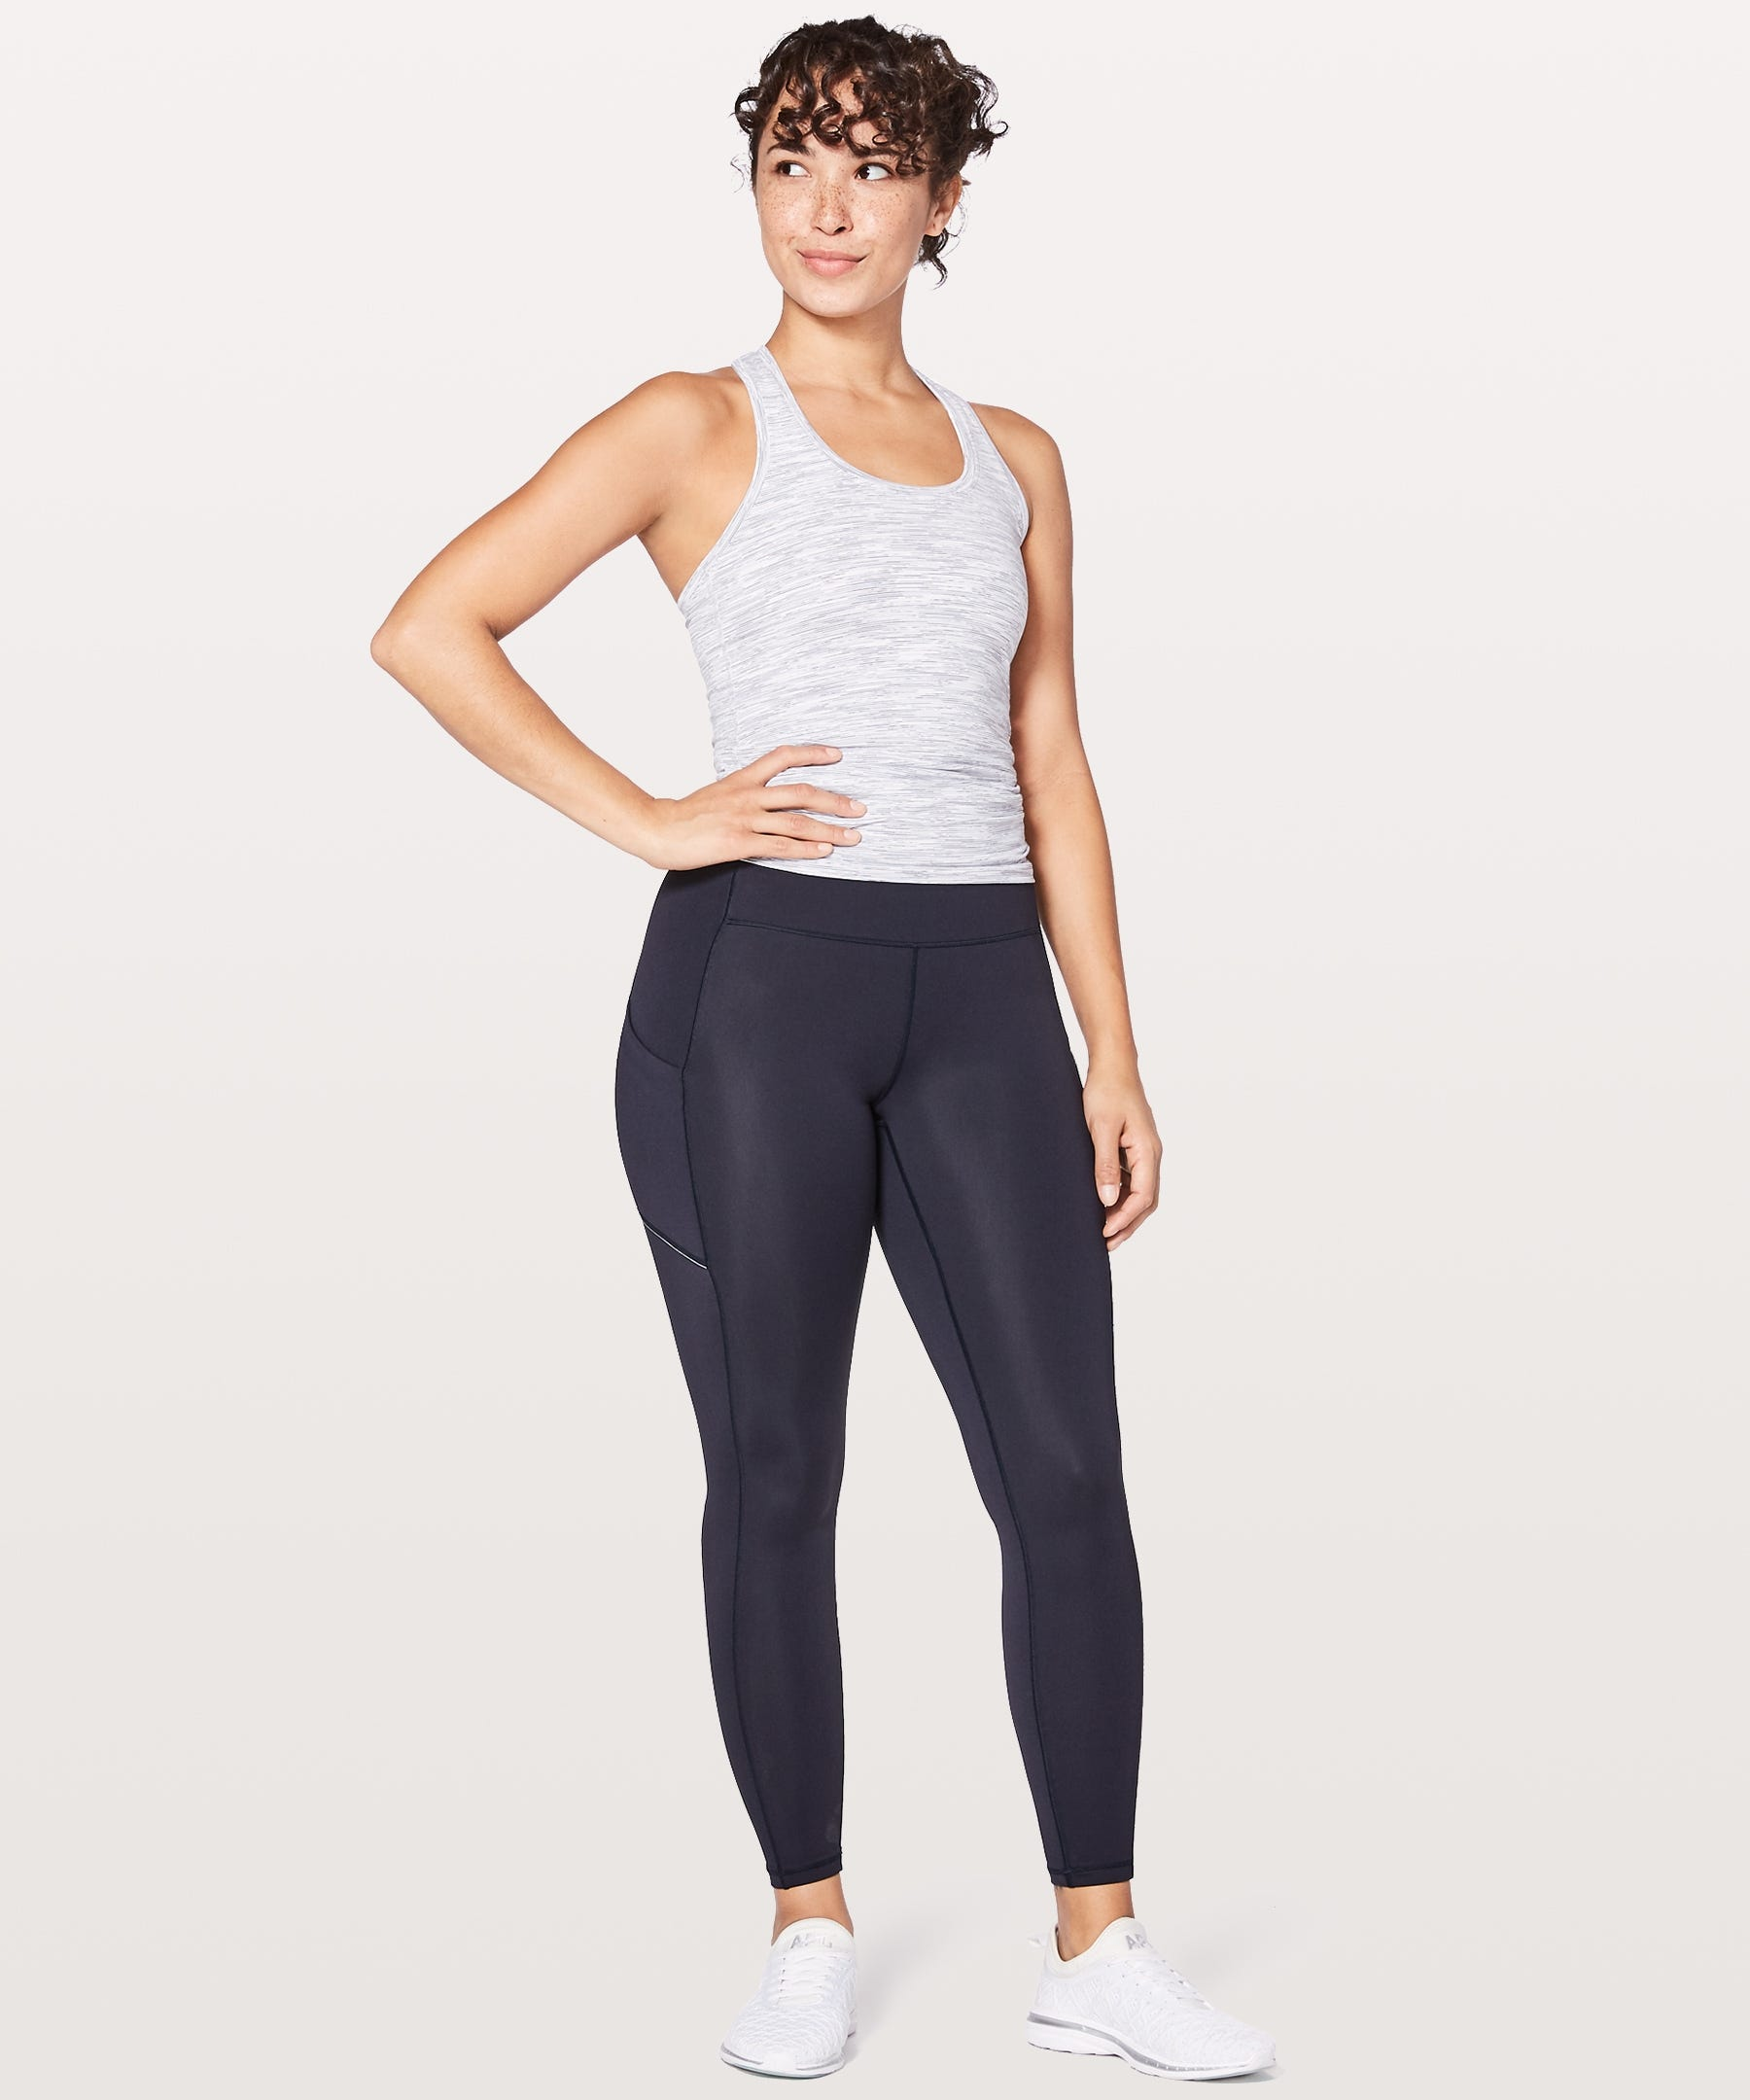 e093bfcf44819 Best Warm Leggings For Winter Workouts Clothes, Women